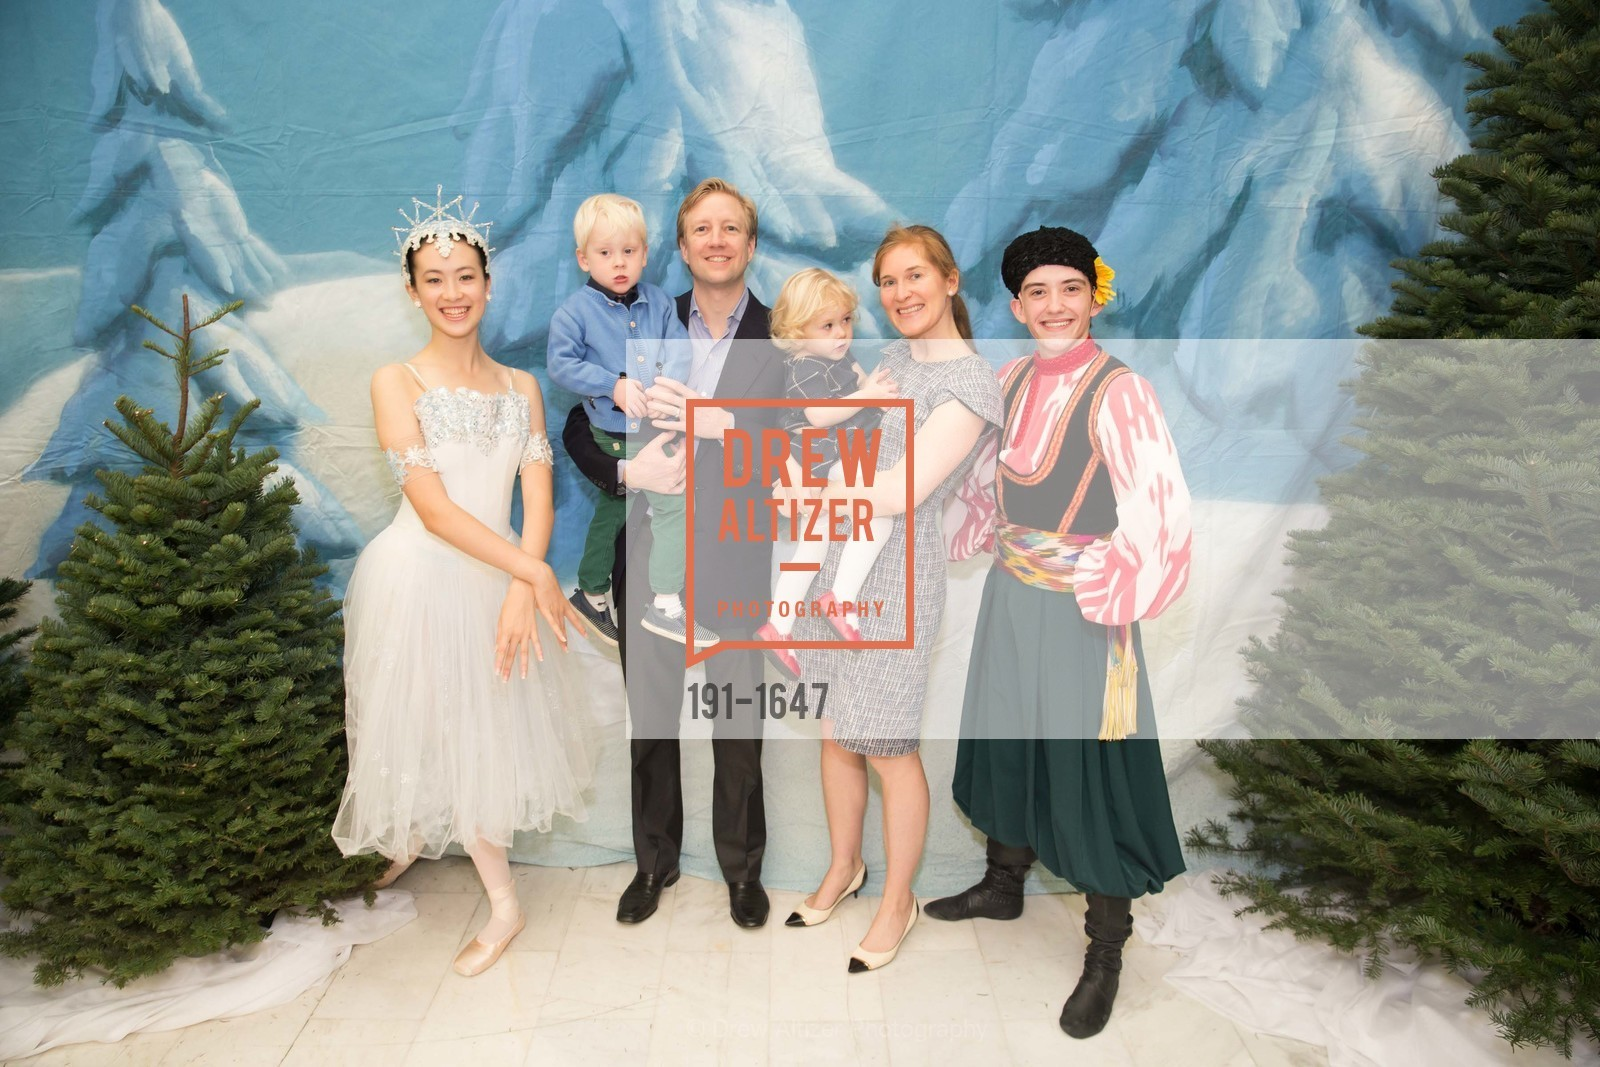 William Thompson, Brant Thompson, Olivia Rose Thompson, Anna Thompson, SF Ballet's Nutcracker Luncheon, City Hall & War Memorial Opera House. 301 Van Ness Ave, San Francisco, CA 94109, December 11th, 2016